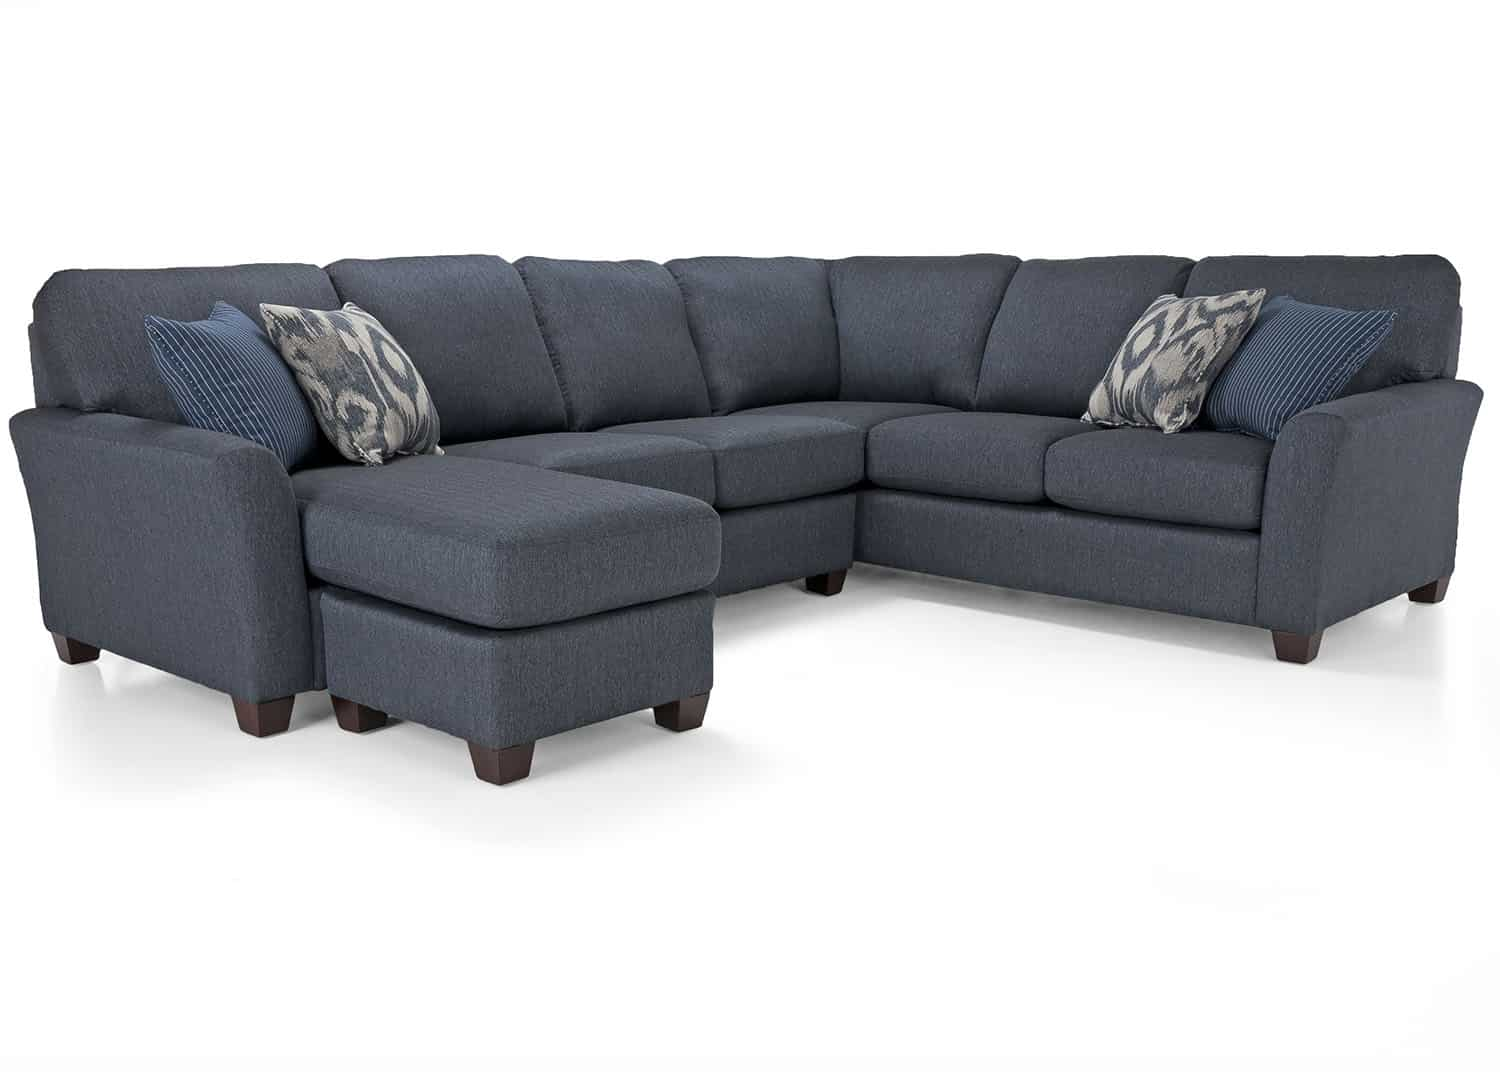 Brent Sectional Sofa | Mobilart Decor High End Furniture